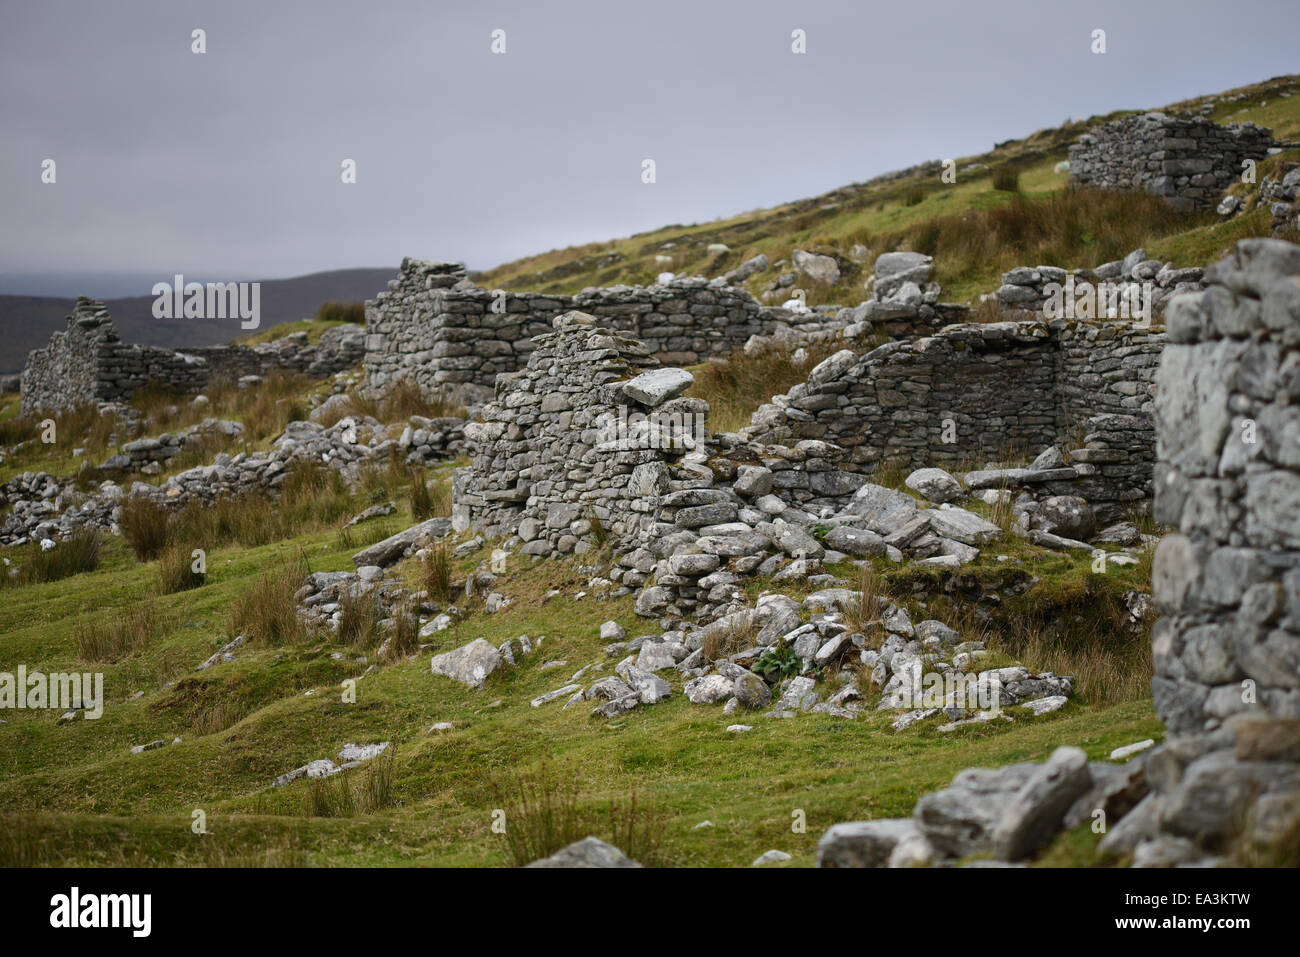 Deserted Village, Slievemore mountain, Co Mayo, Achill Island. Ireland, Village of approx 80 houses. Landscape - Stock Image